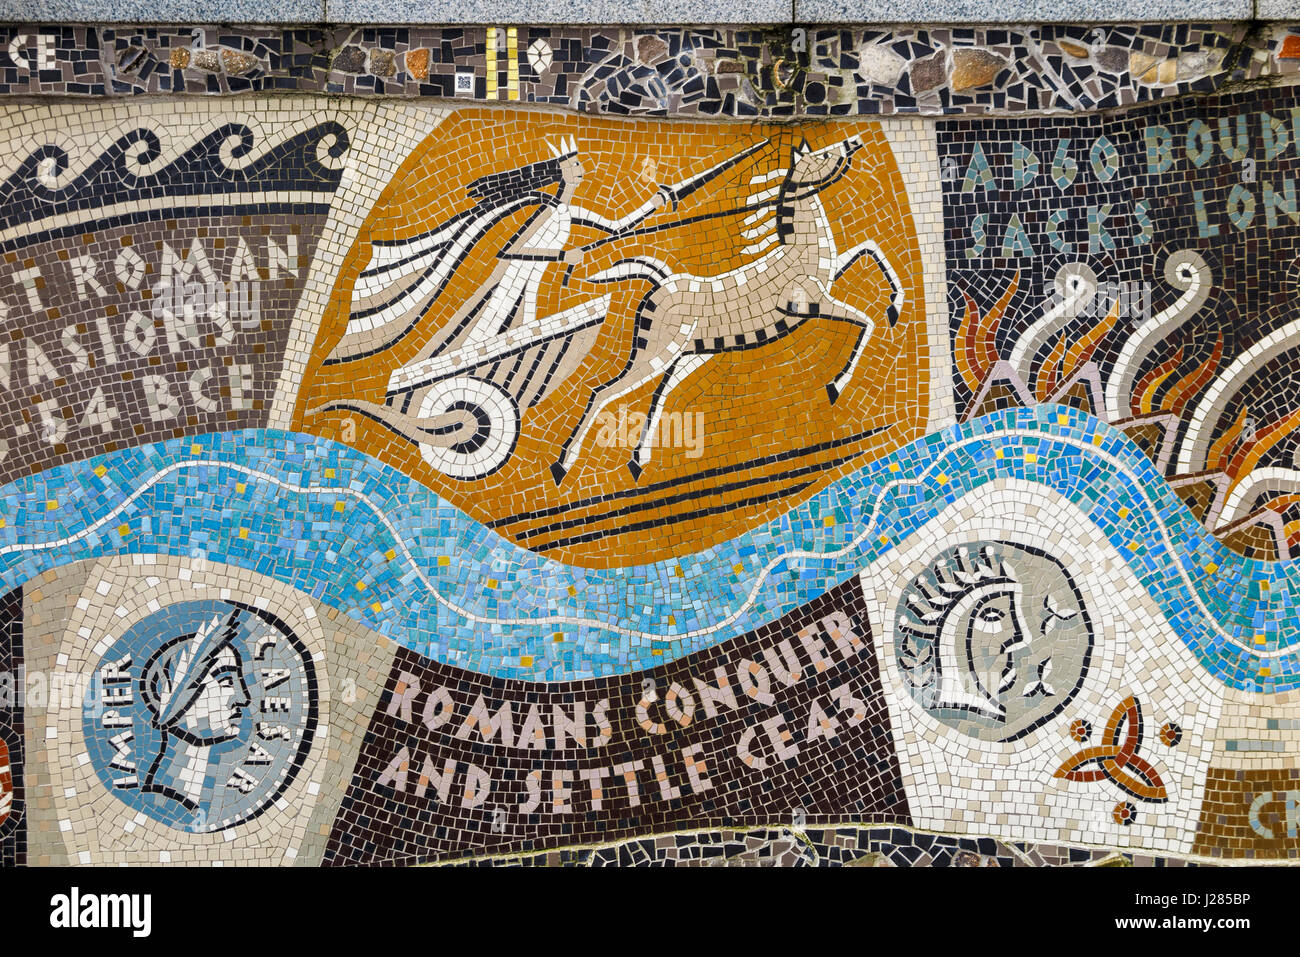 Detail of Queenhithe Mosaic (Queen Boudica or Boadicea riding her chariot) on Riverside Walk, London EC4, commemorating - Stock Image